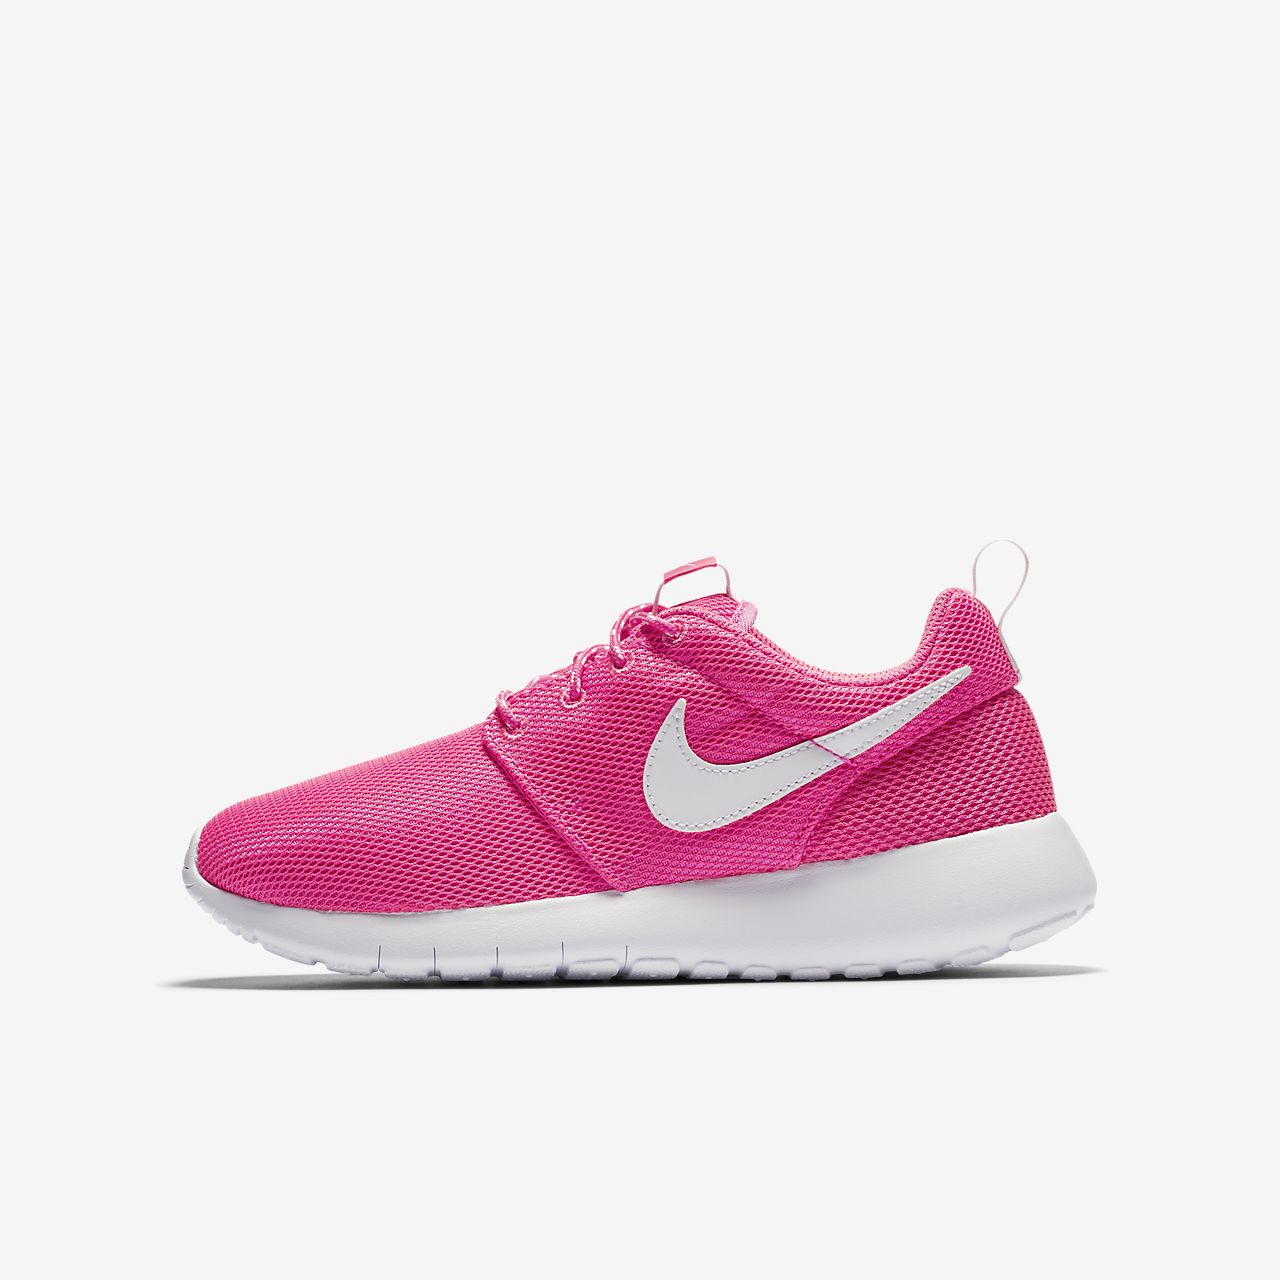 ... Nike Roshe One Older Kids' Shoe